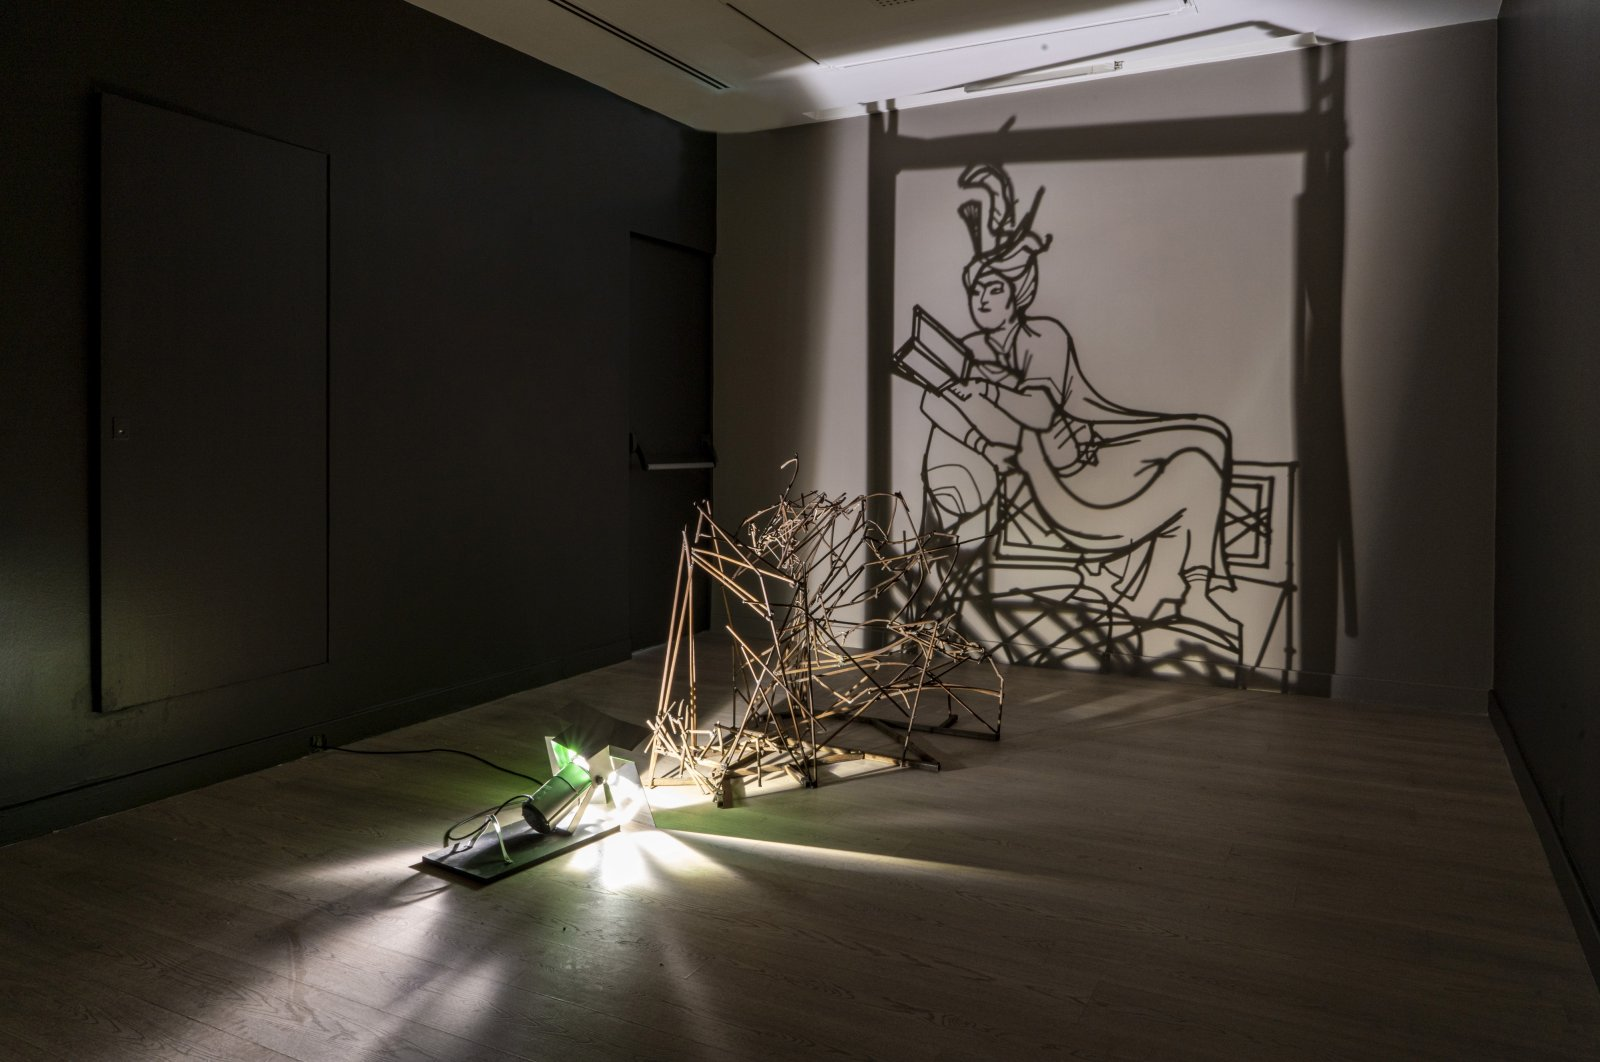 "Rashad Alakbarov, ""Miniature (Prince reading a book),"" 2013, iron installation, 110 by 110 by 110 centimeters. (PHOTO COURTESY OF PERA MUSEUM)"